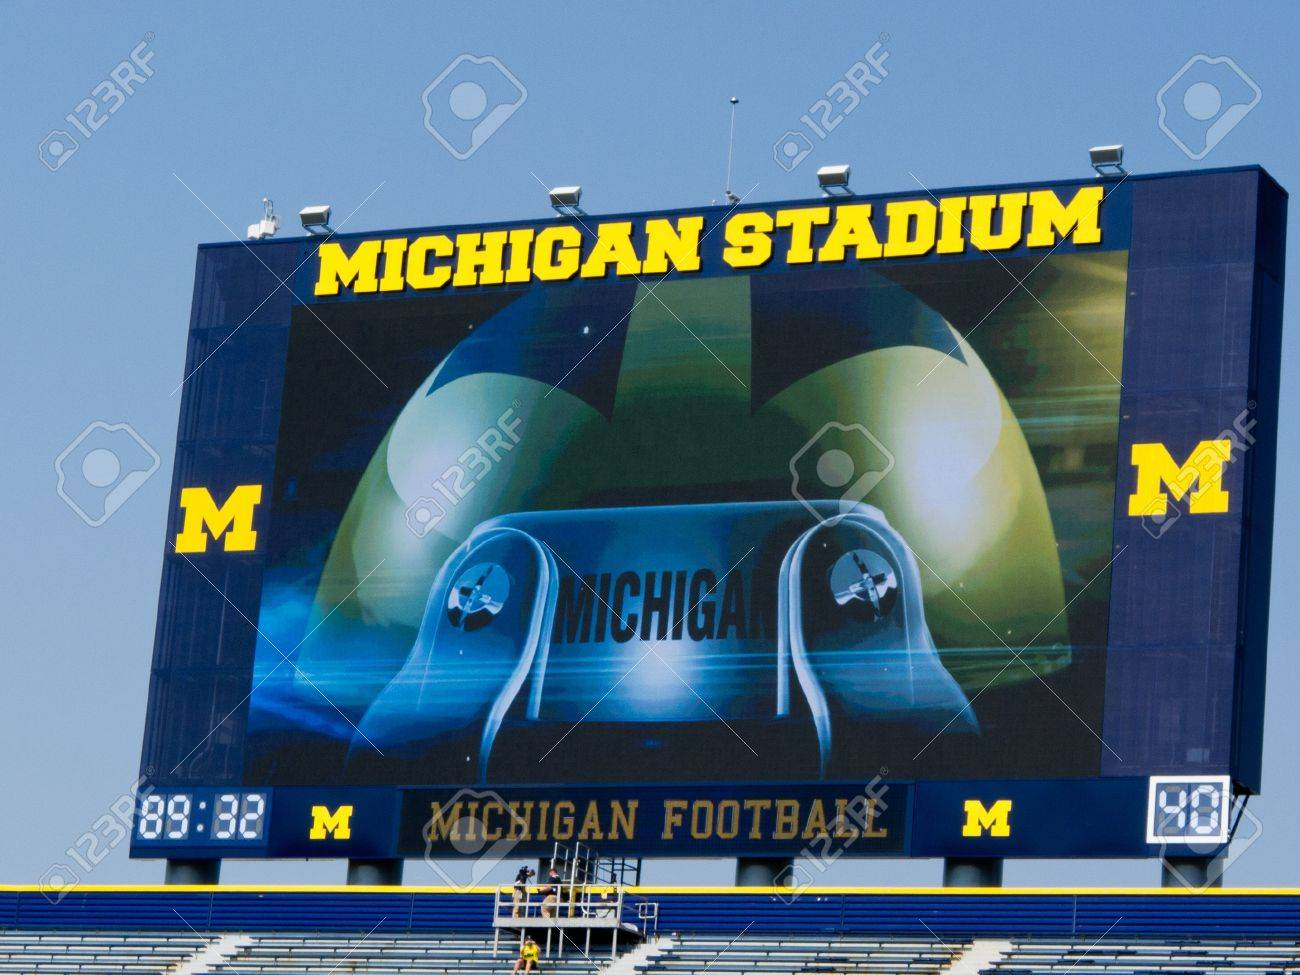 The University of Michigan Wolverines opened their 2011 football season on Saturday, Sept. 3, with new scoreboards at the Big House in Ann Arbor and a new coach, Brady Hoke. Stock Photo - 10466408